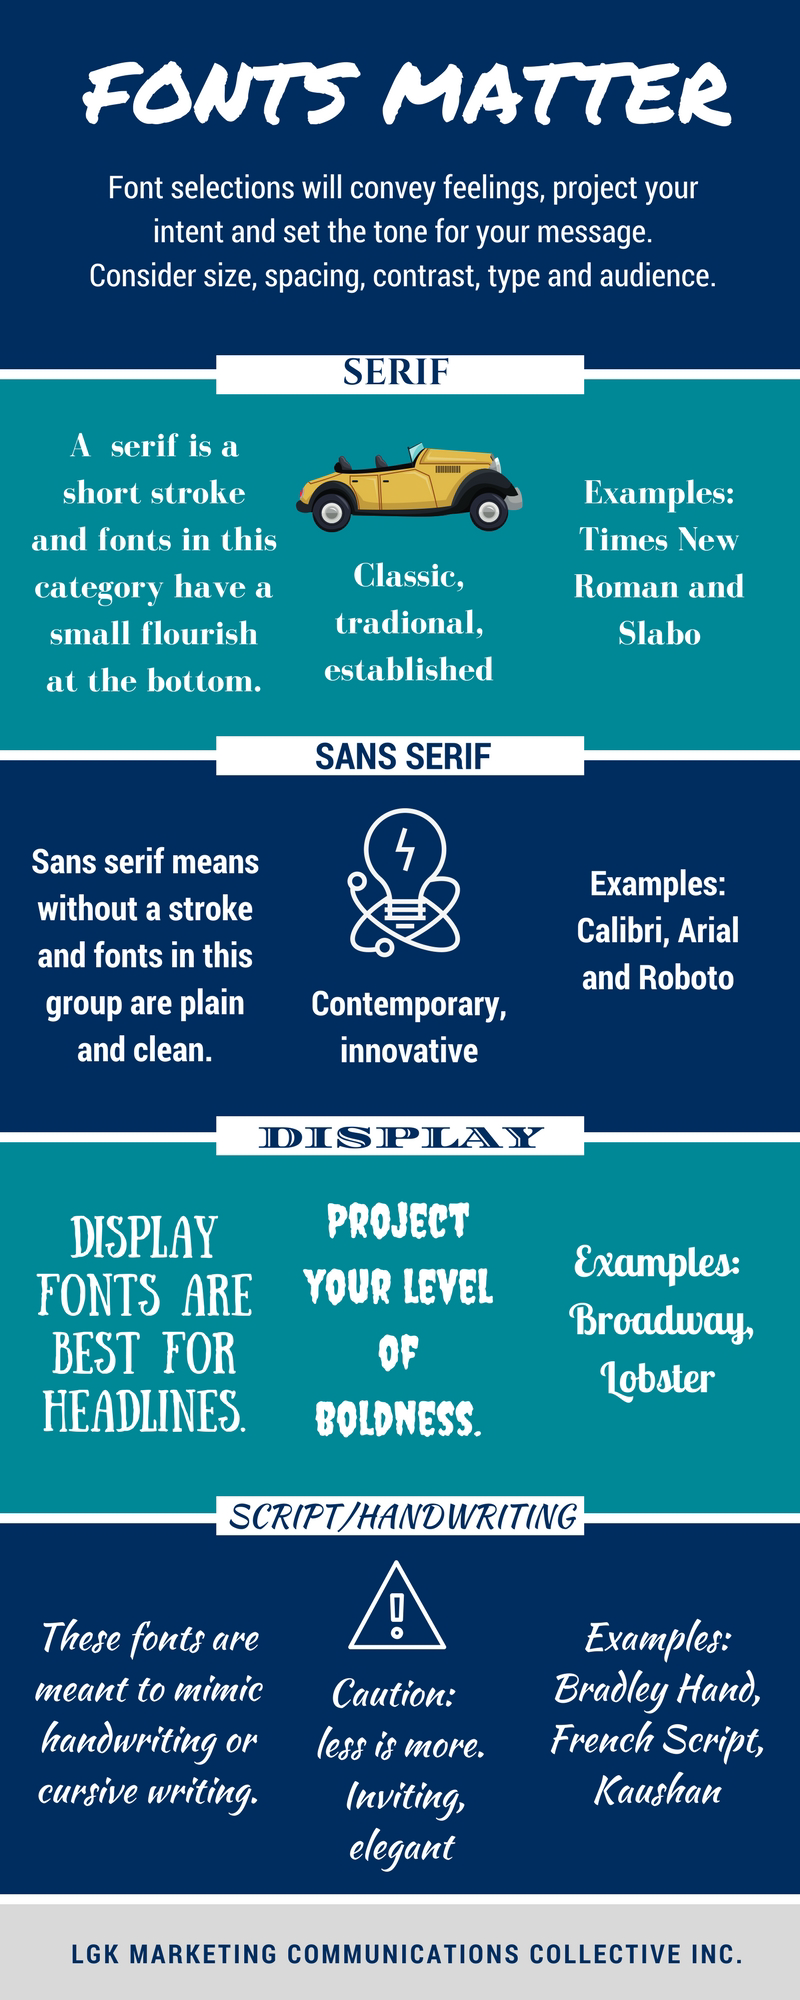 Fonts Matter for Content Marketing: Going Beyond Calibri